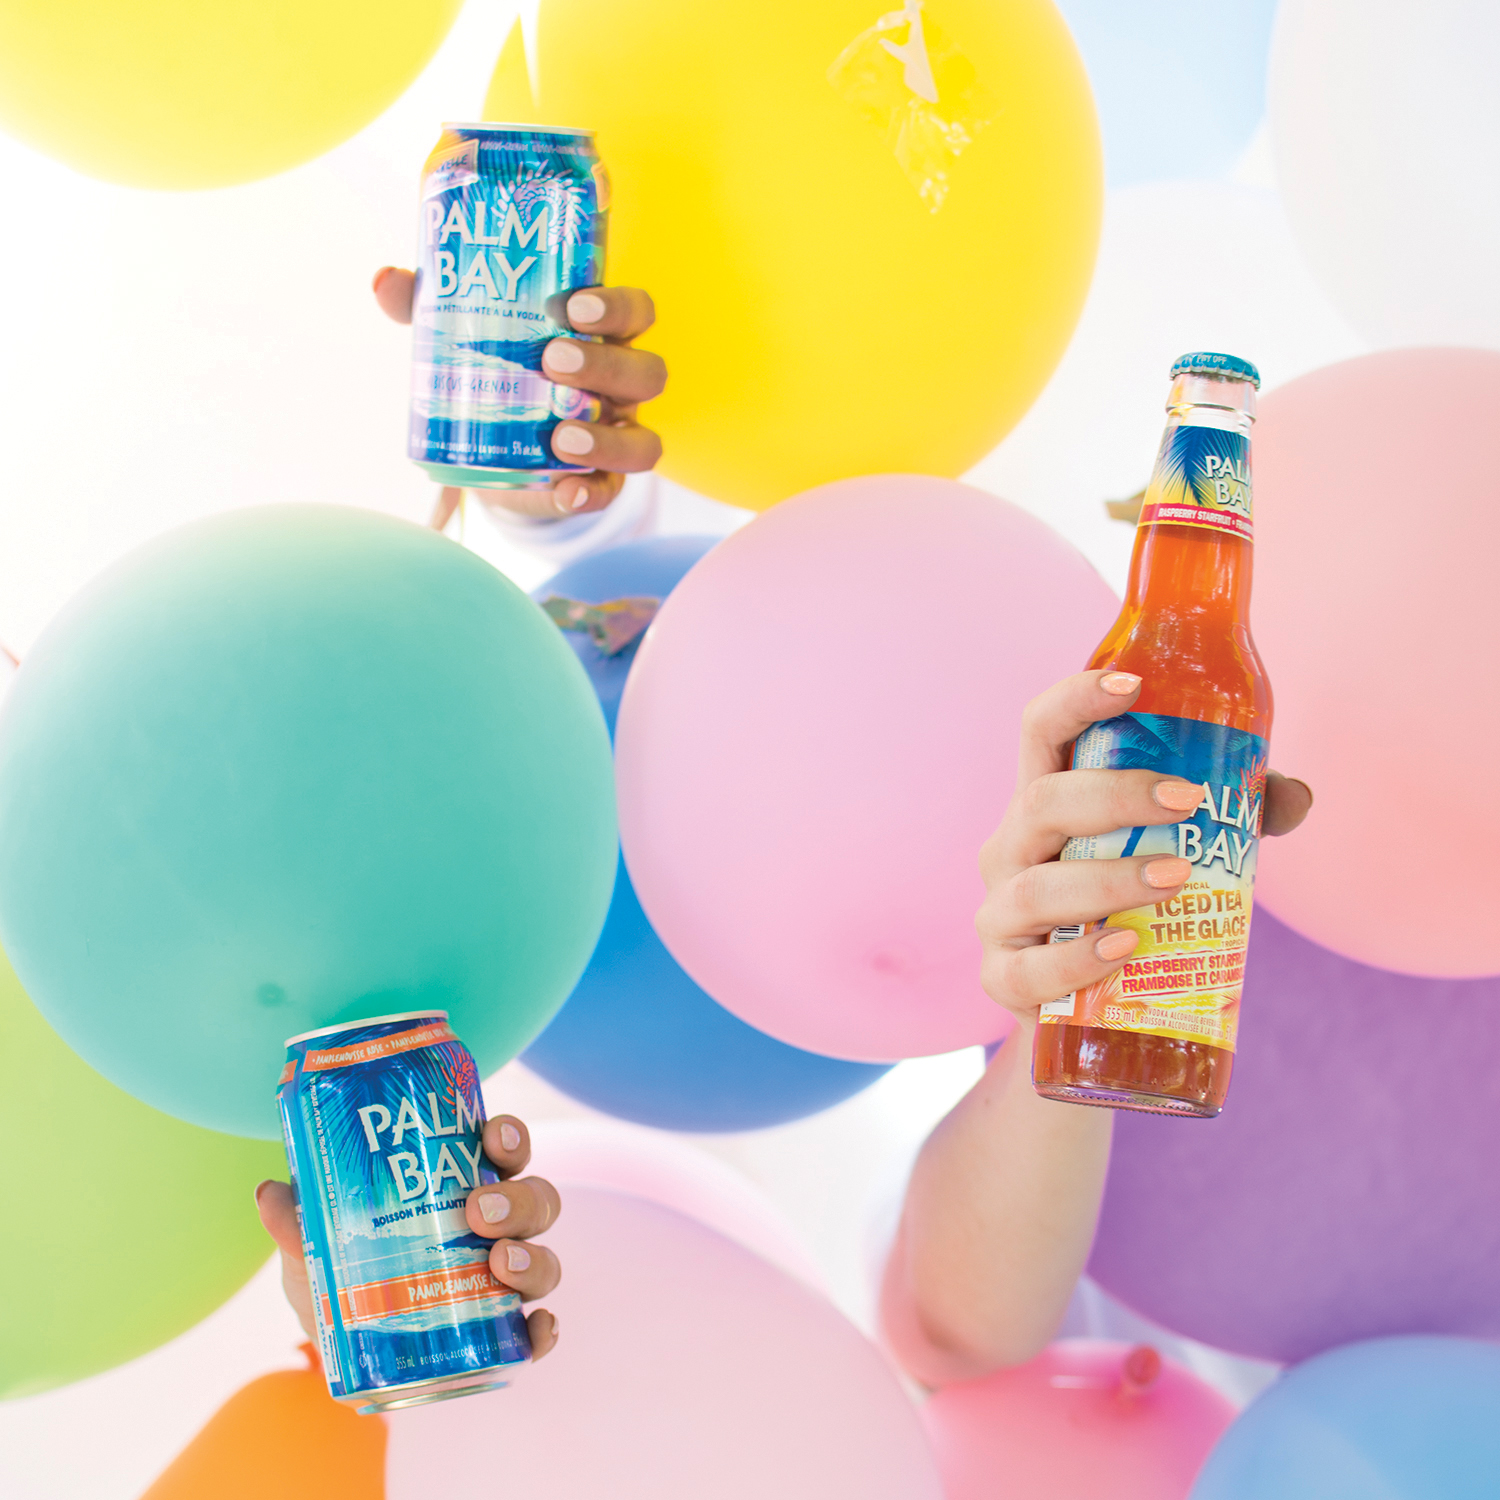 To change perceptions and boost sales for a category leading brand, High Road invited influencers to create their own Palm Bay-inspired shindigs with friends.